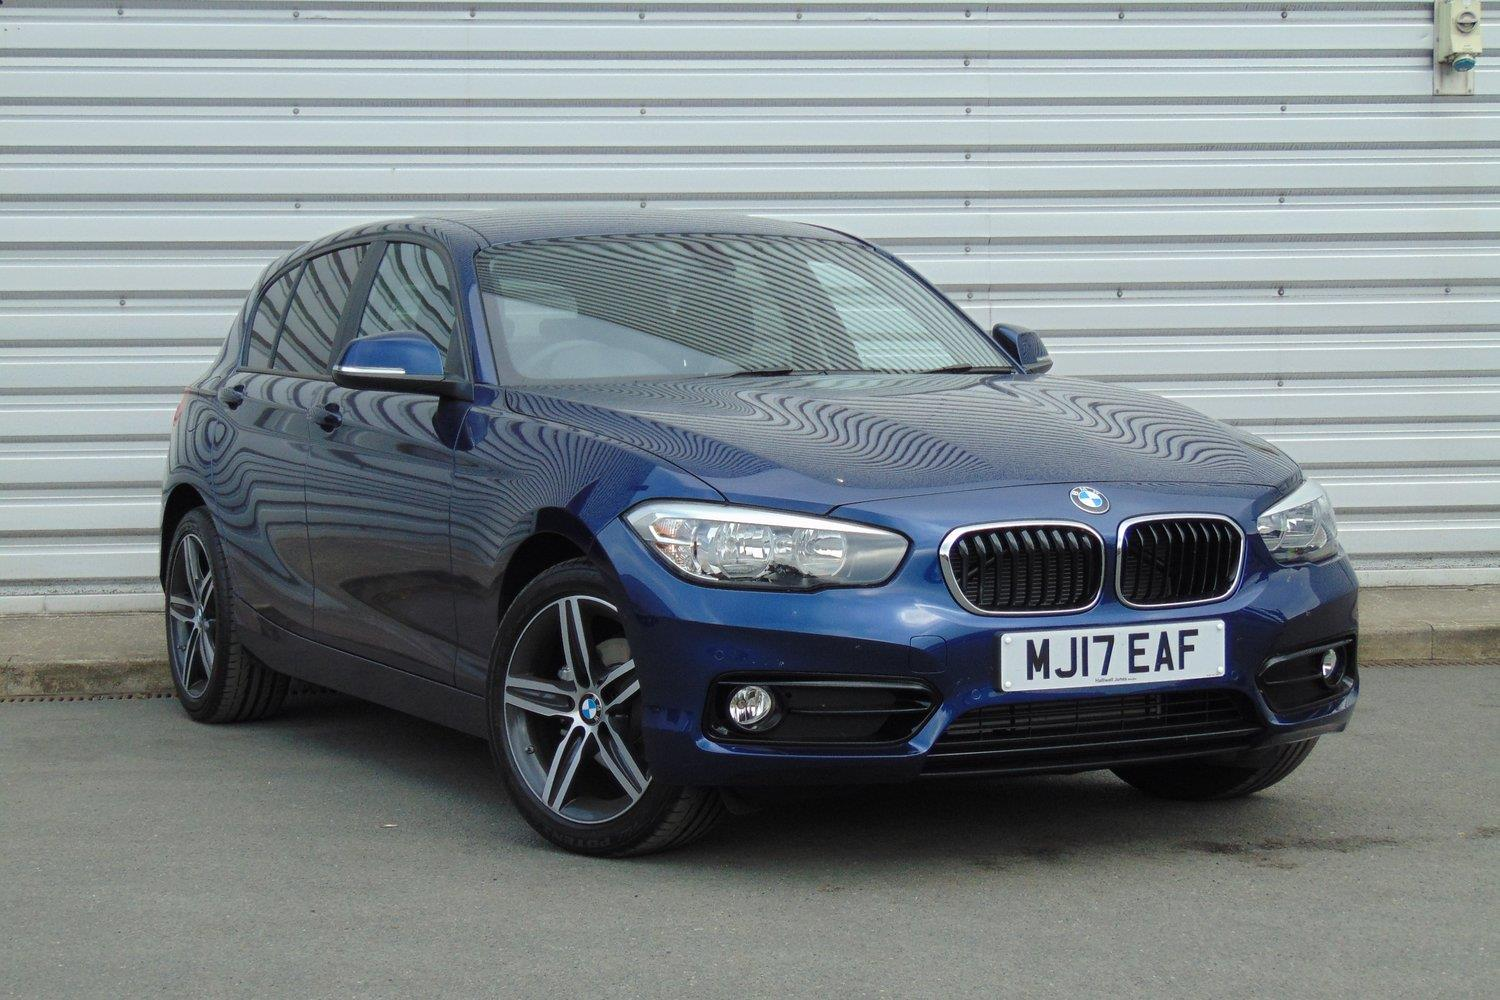 BMW 1 Series 5-door Sports Hatch MJ17EAF - Image 9